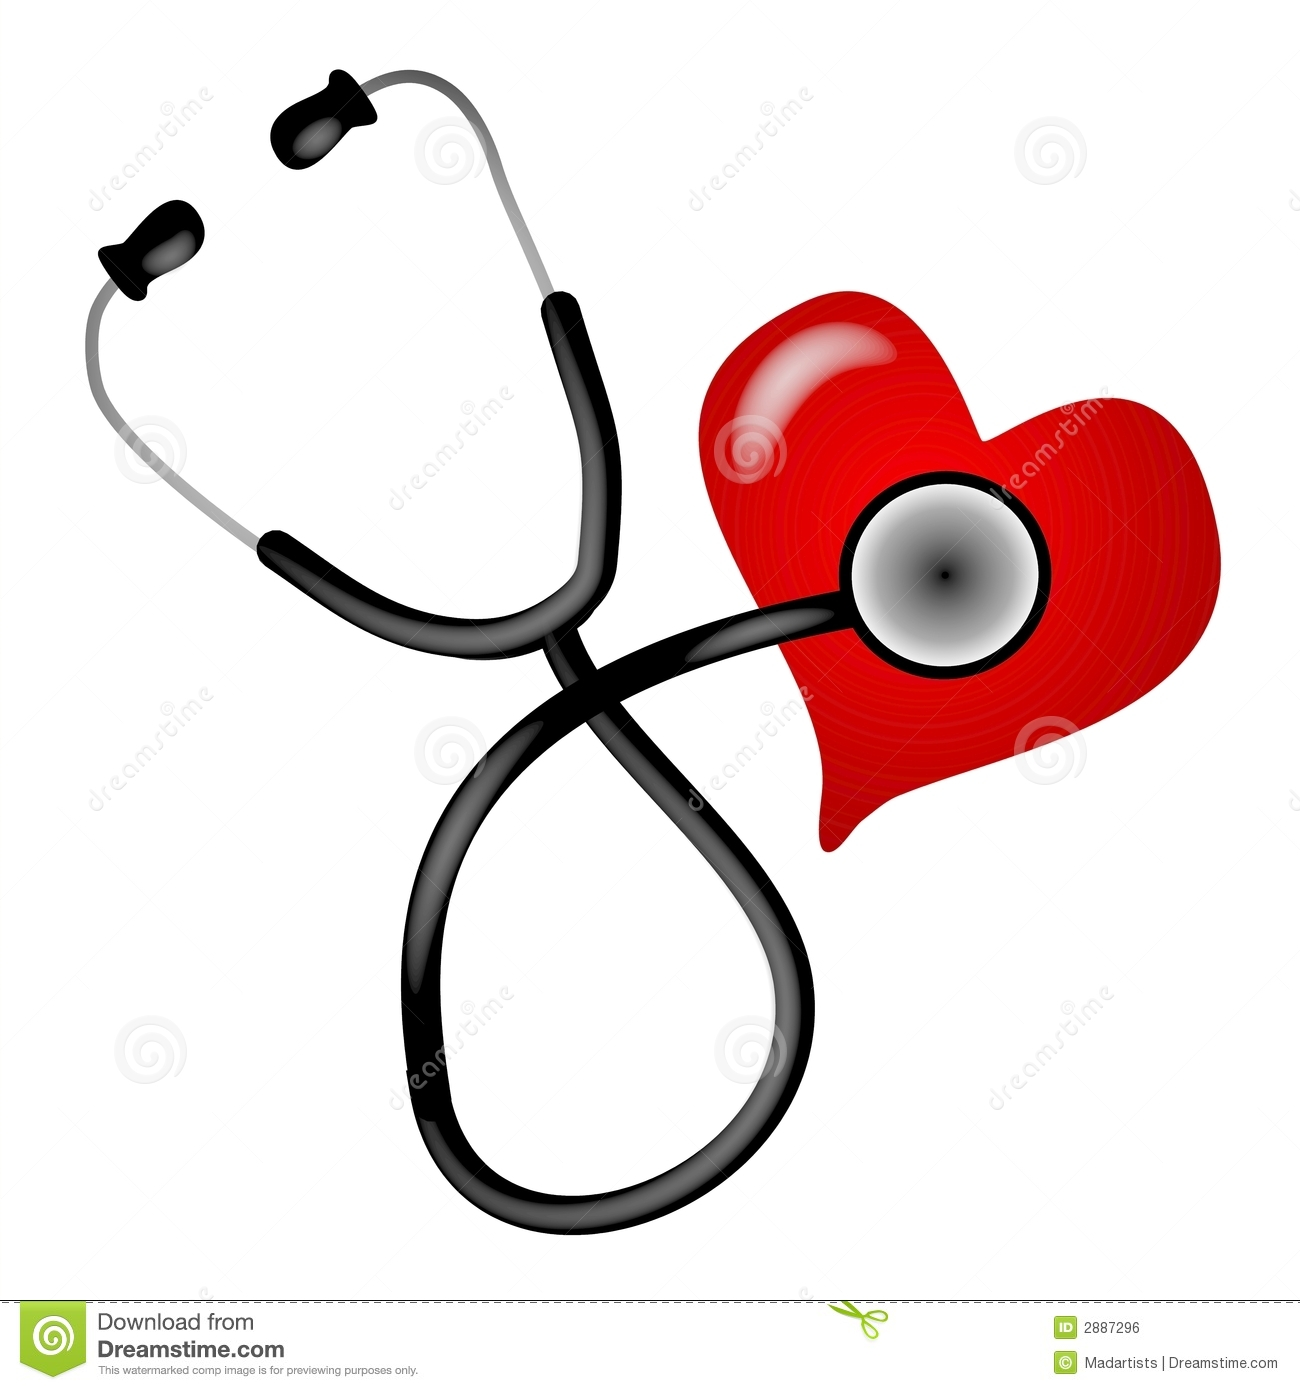 hight resolution of a clip art illustration of a stethoscope on a white isolated background placed on a heart to depict heart health and awareness topics